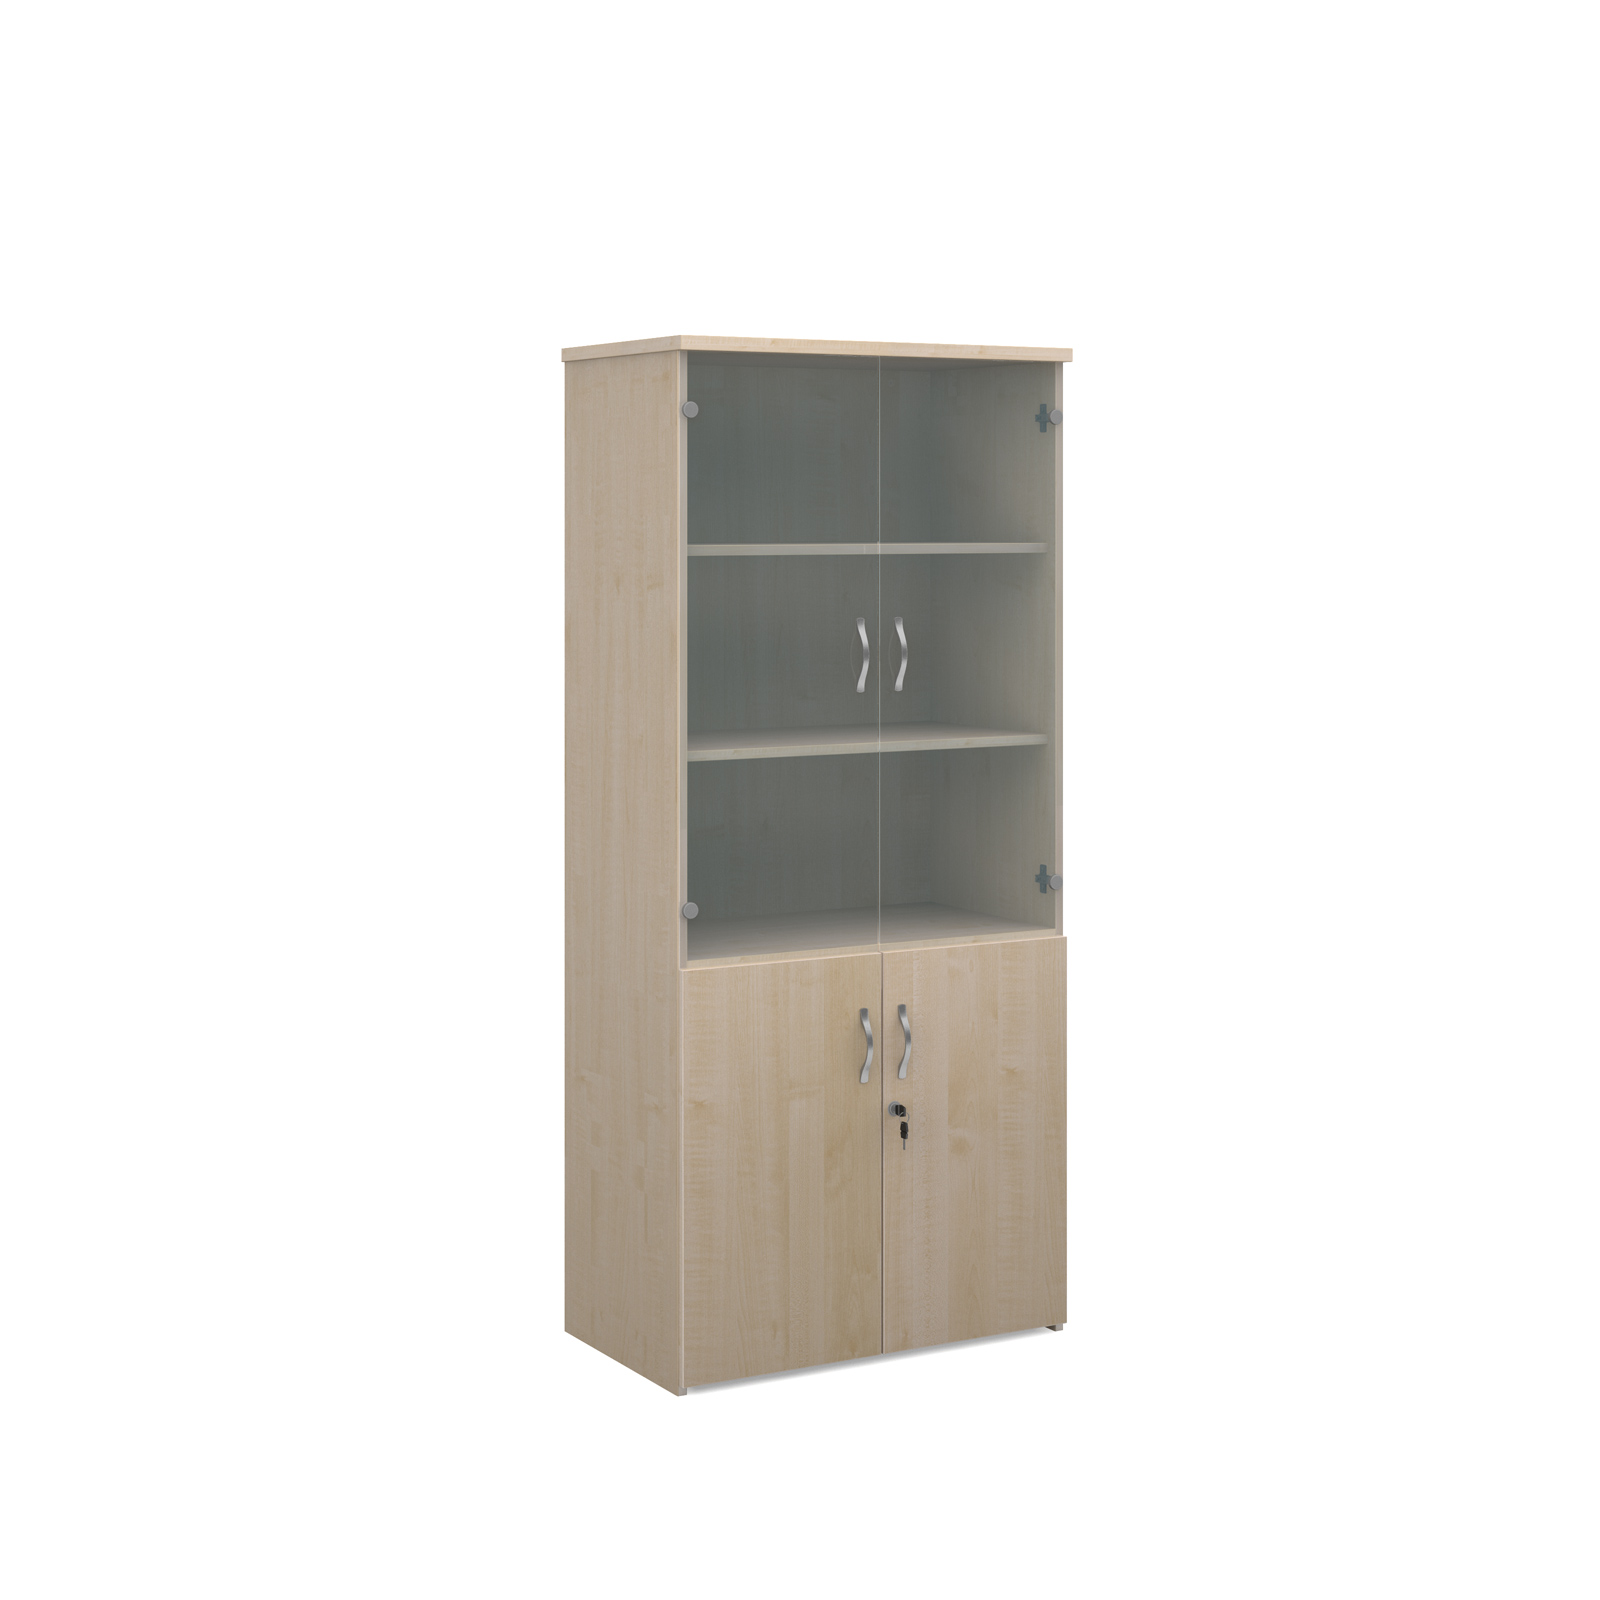 1790mm high combination unit with glass and wood doors in maple